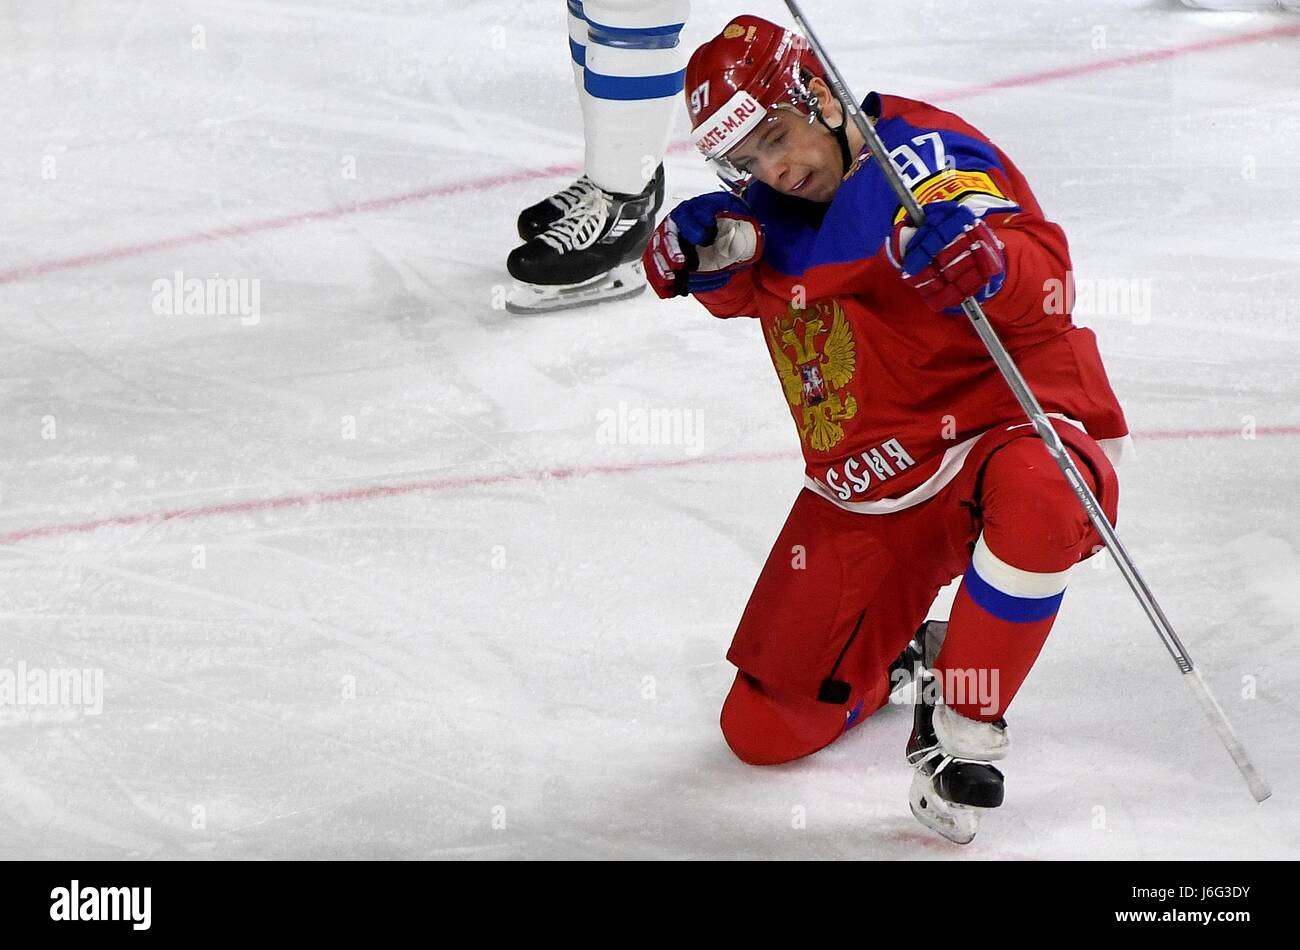 Gusev Stock Photos & Gusev Stock Images - Alamy